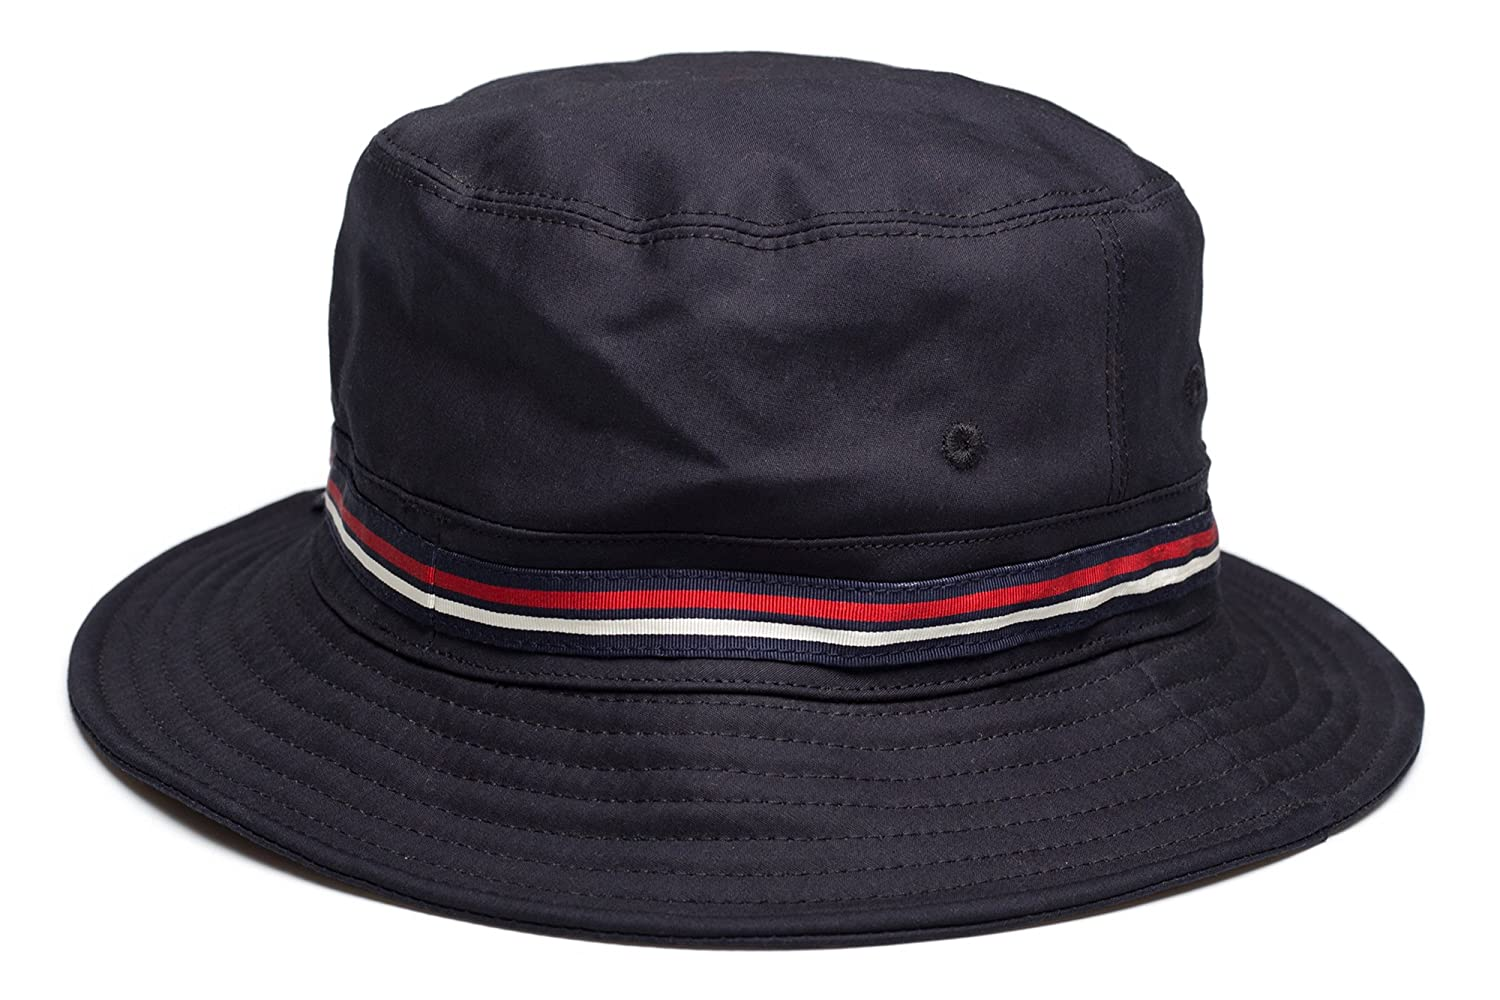 Moncler Men s Cotton Bucket Hat Black  Moncler  Amazon.co.uk  Clothing 199379a90f3